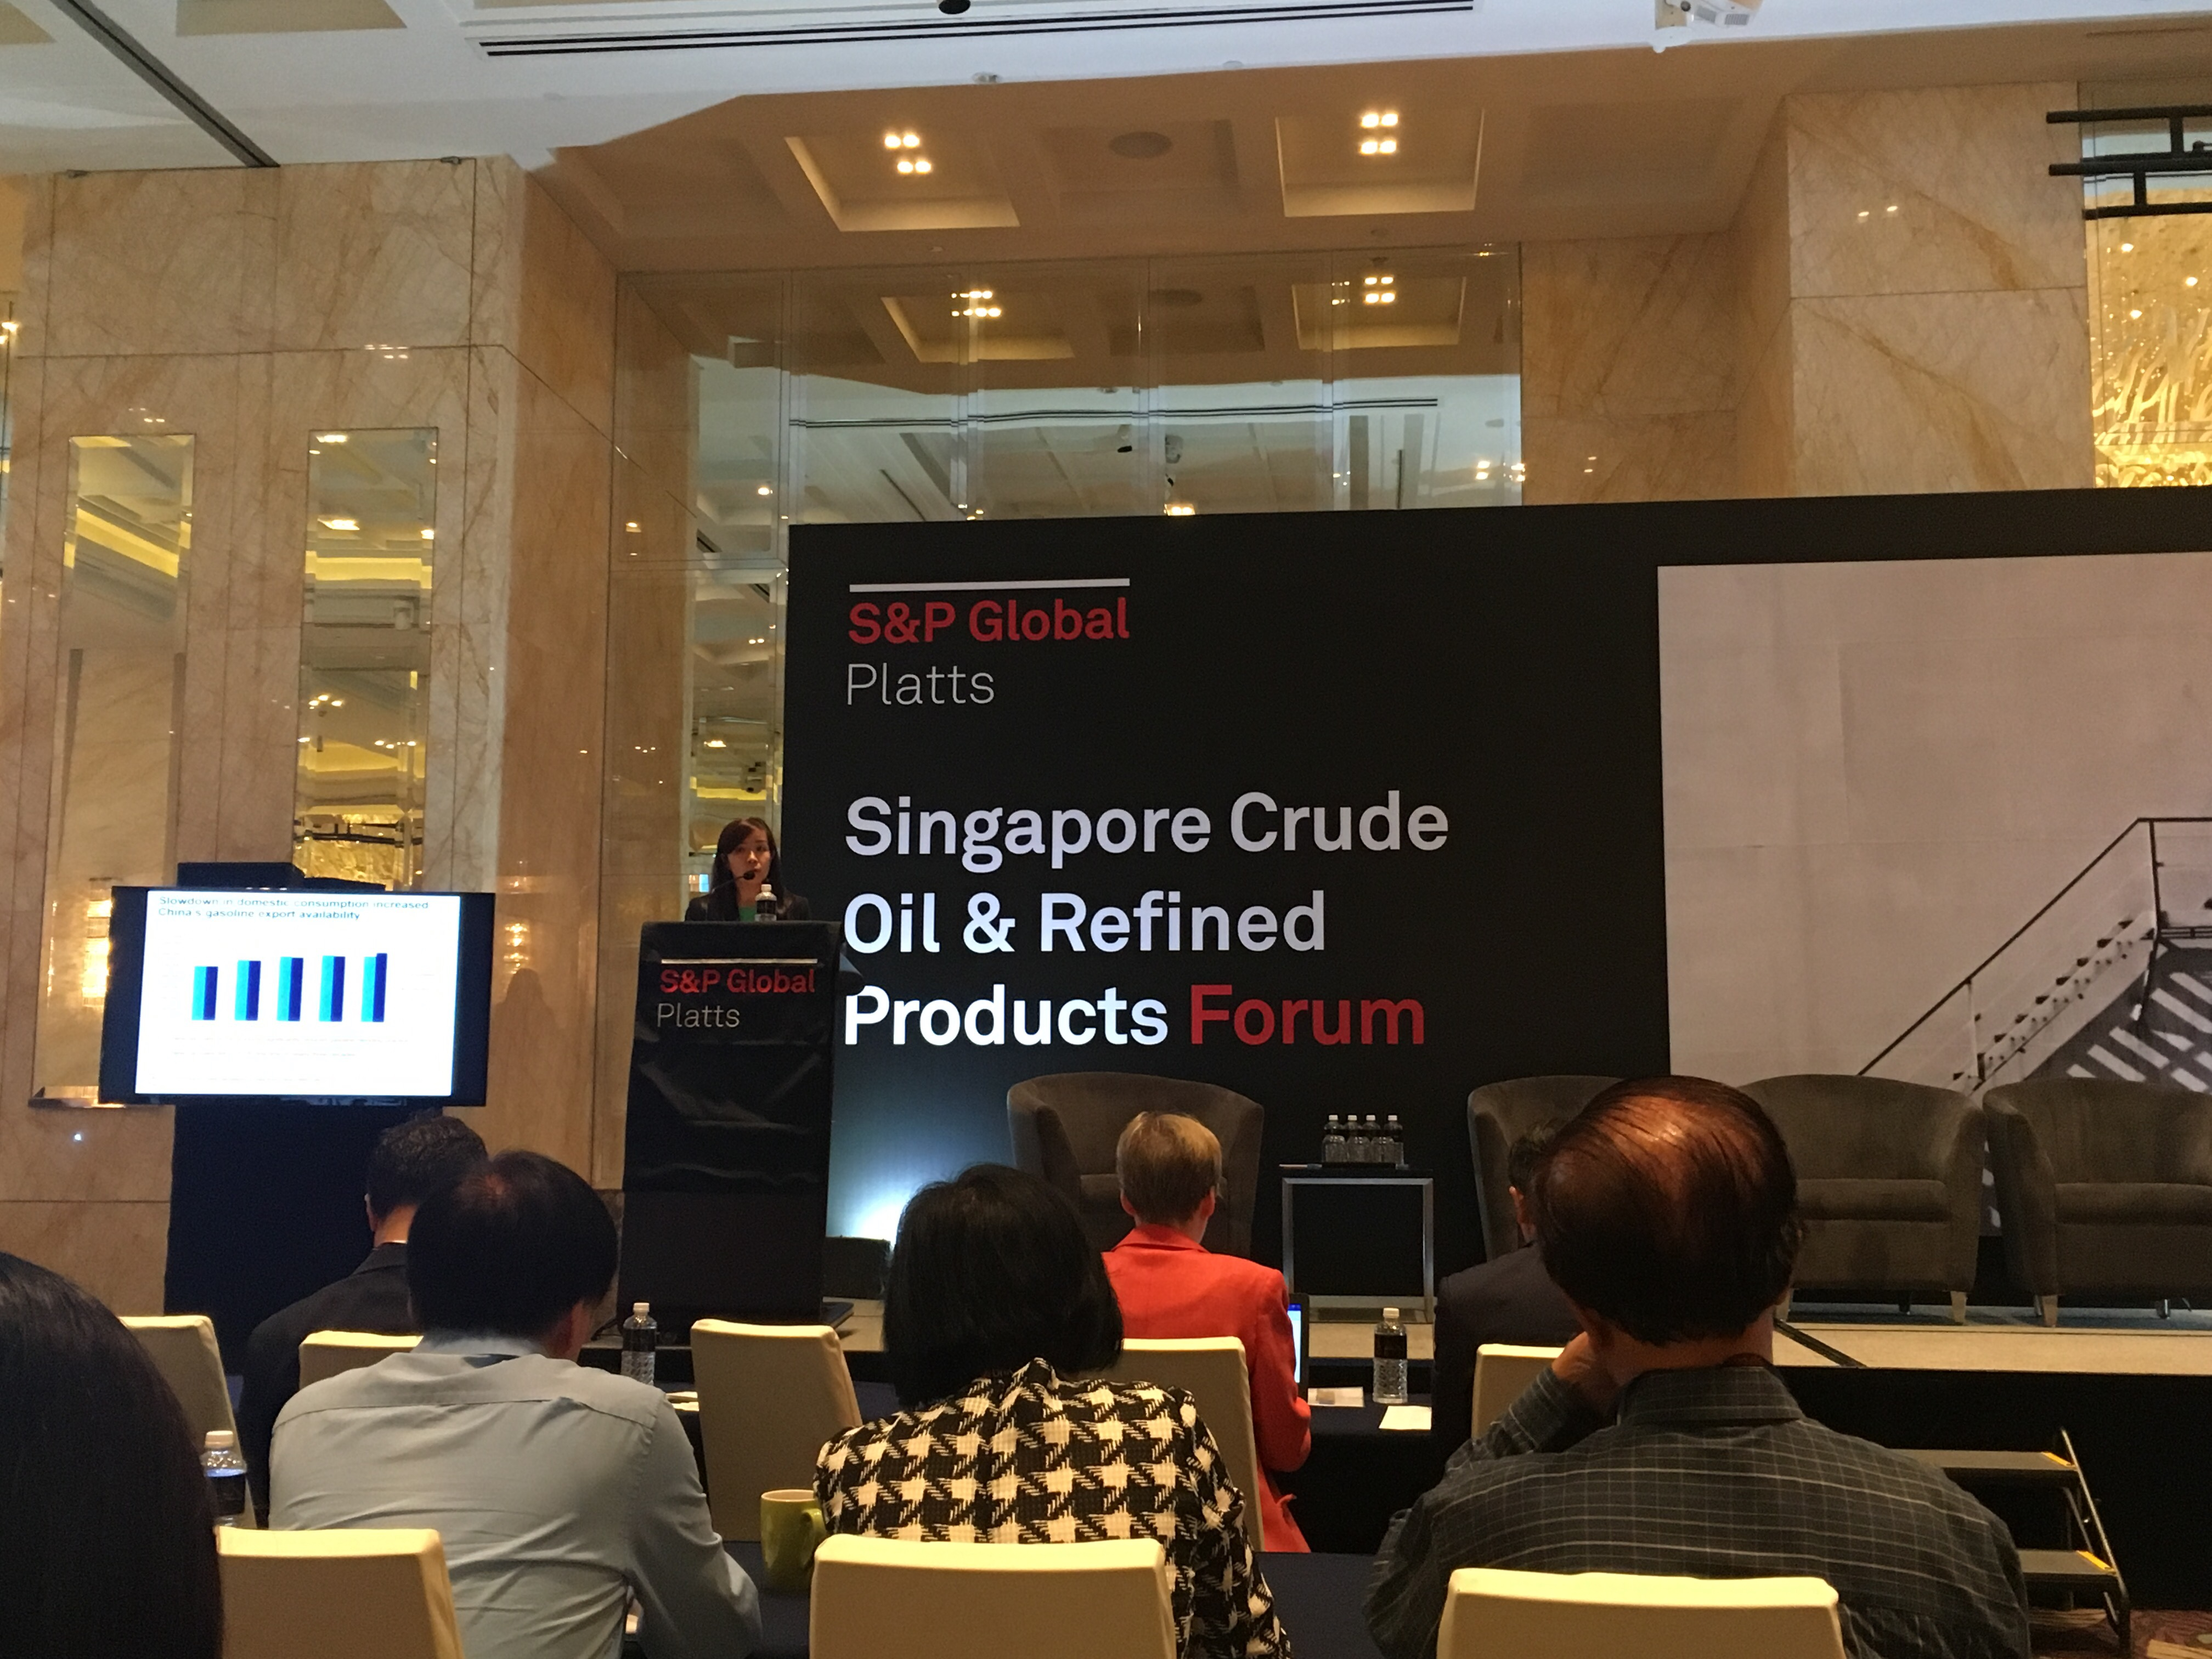 Singapore Crude Oil & Refined Products Forum – EMTAC 昂腾国际